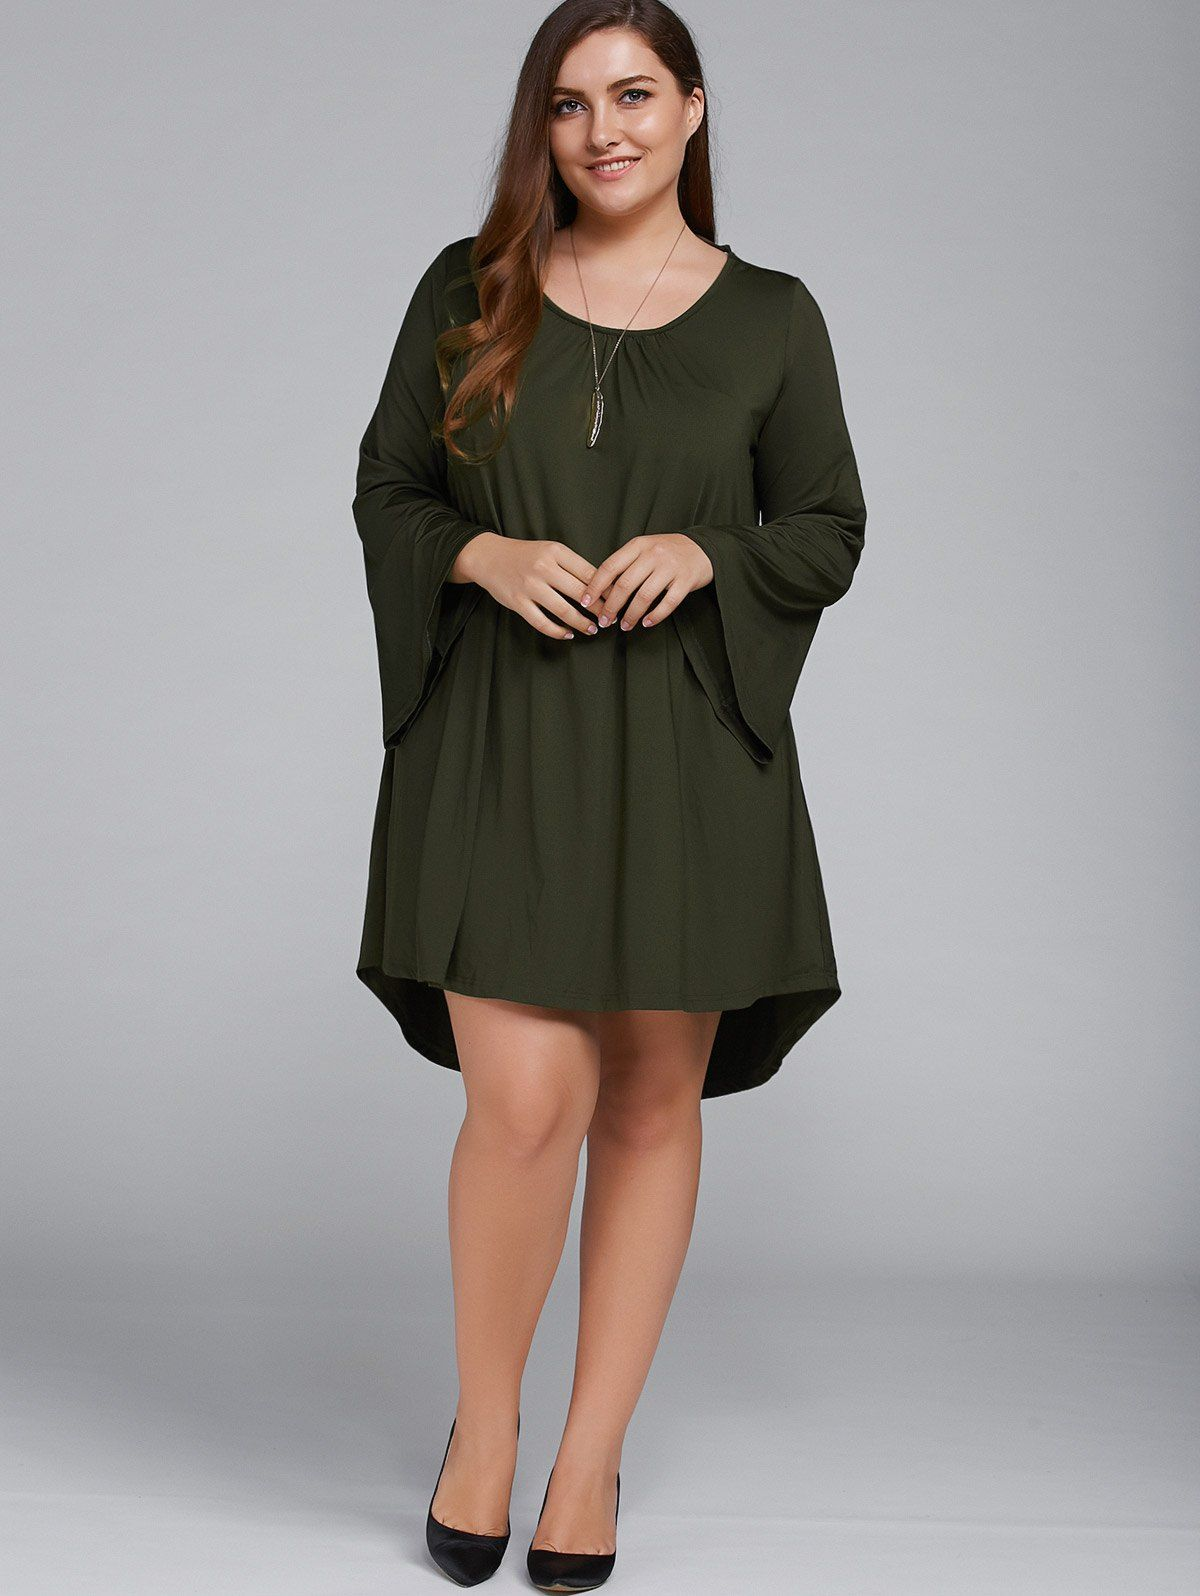 Plus Size Bell Sleeve Lace Up Dress Business Casual Clothes And